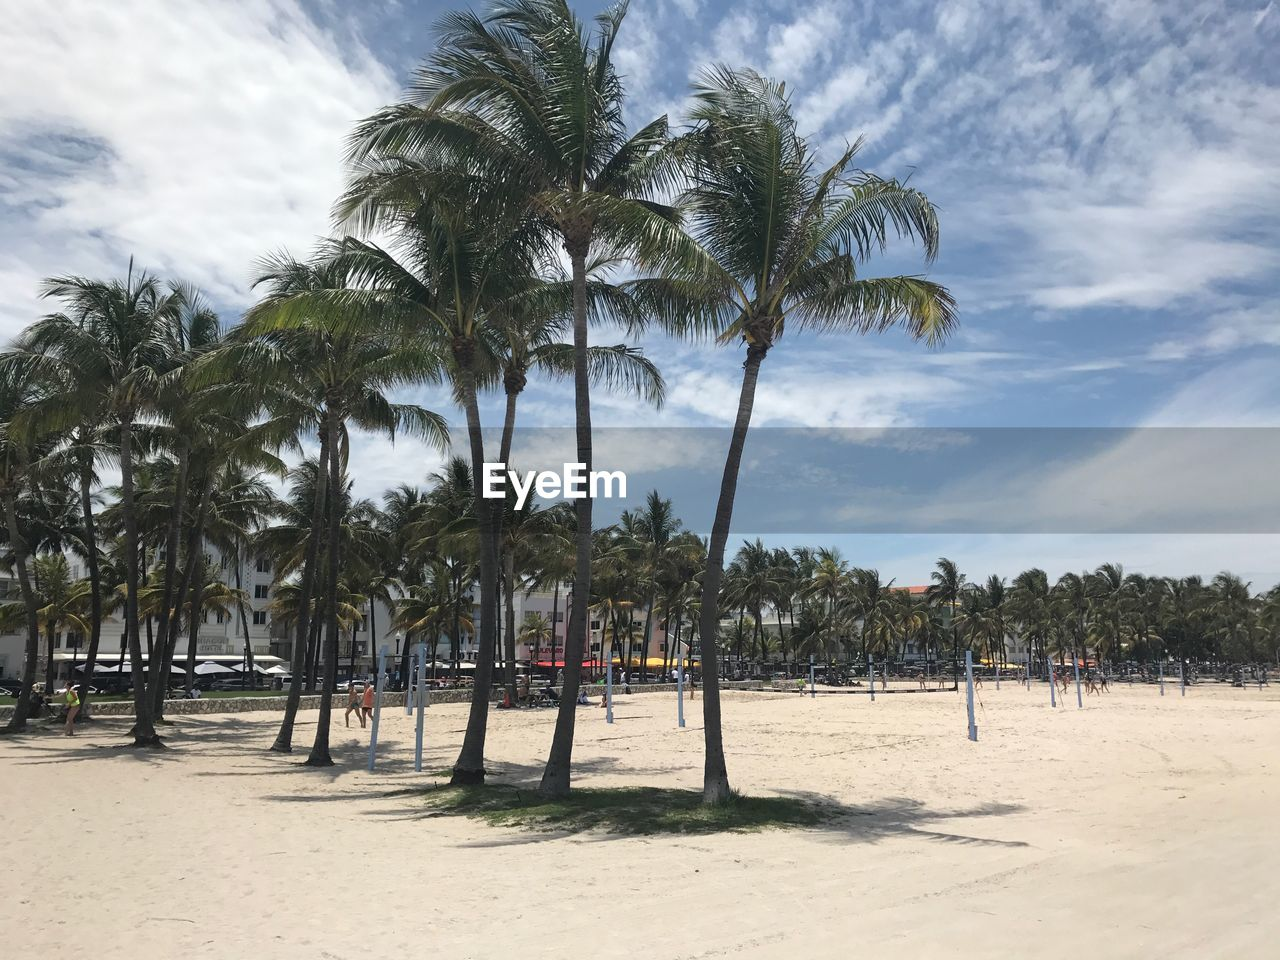 tropical climate, tree, palm tree, plant, beach, land, sky, sand, cloud - sky, nature, growth, beauty in nature, day, outdoors, sunlight, tranquility, scenics - nature, sea, coconut palm tree, tranquil scene, tropical tree, palm leaf, treelined